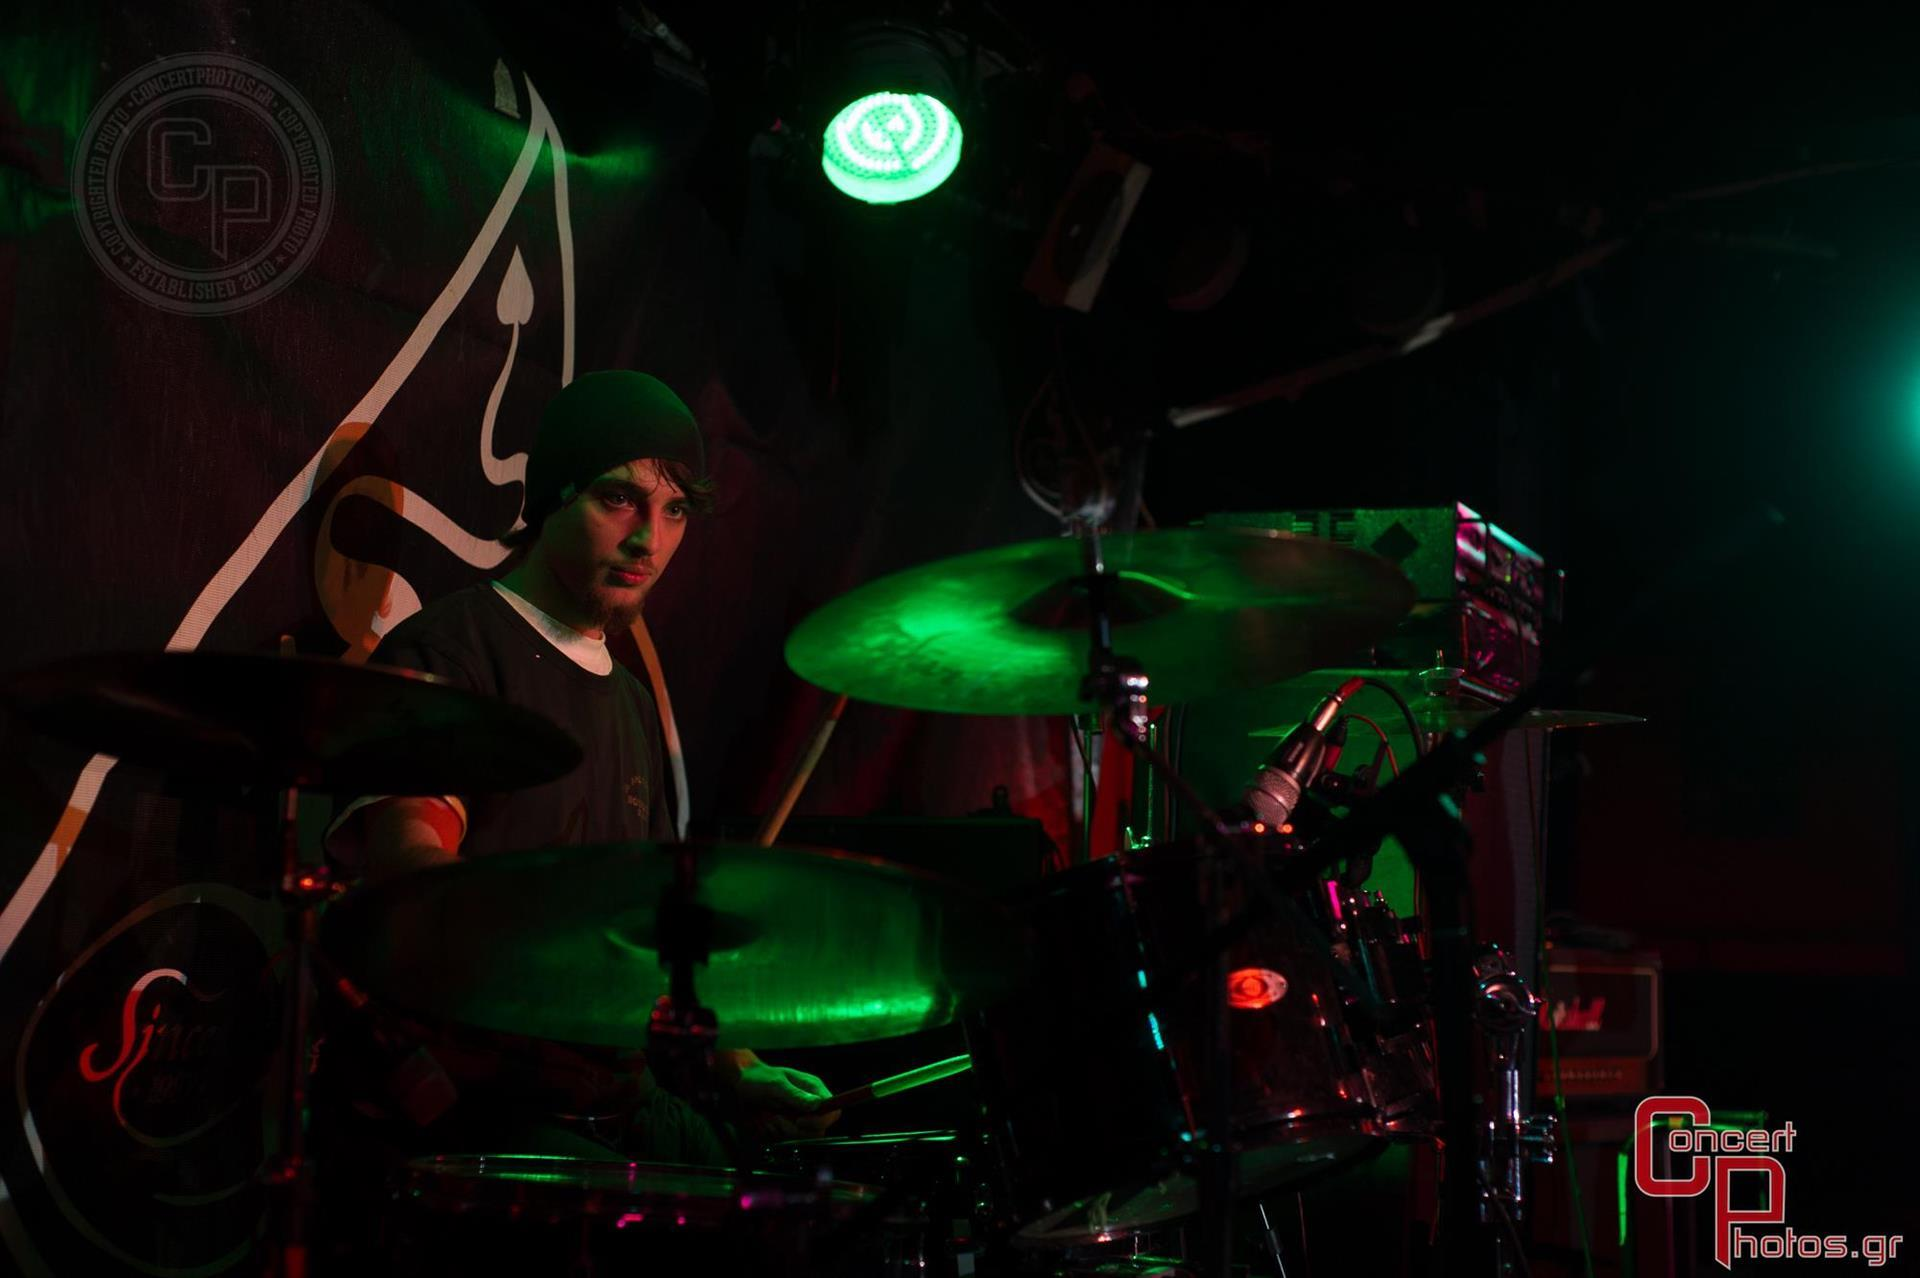 Battle Of The Bands Athens - Leg 3- photographer:  - ConcertPhotos - 20150104_2145_01